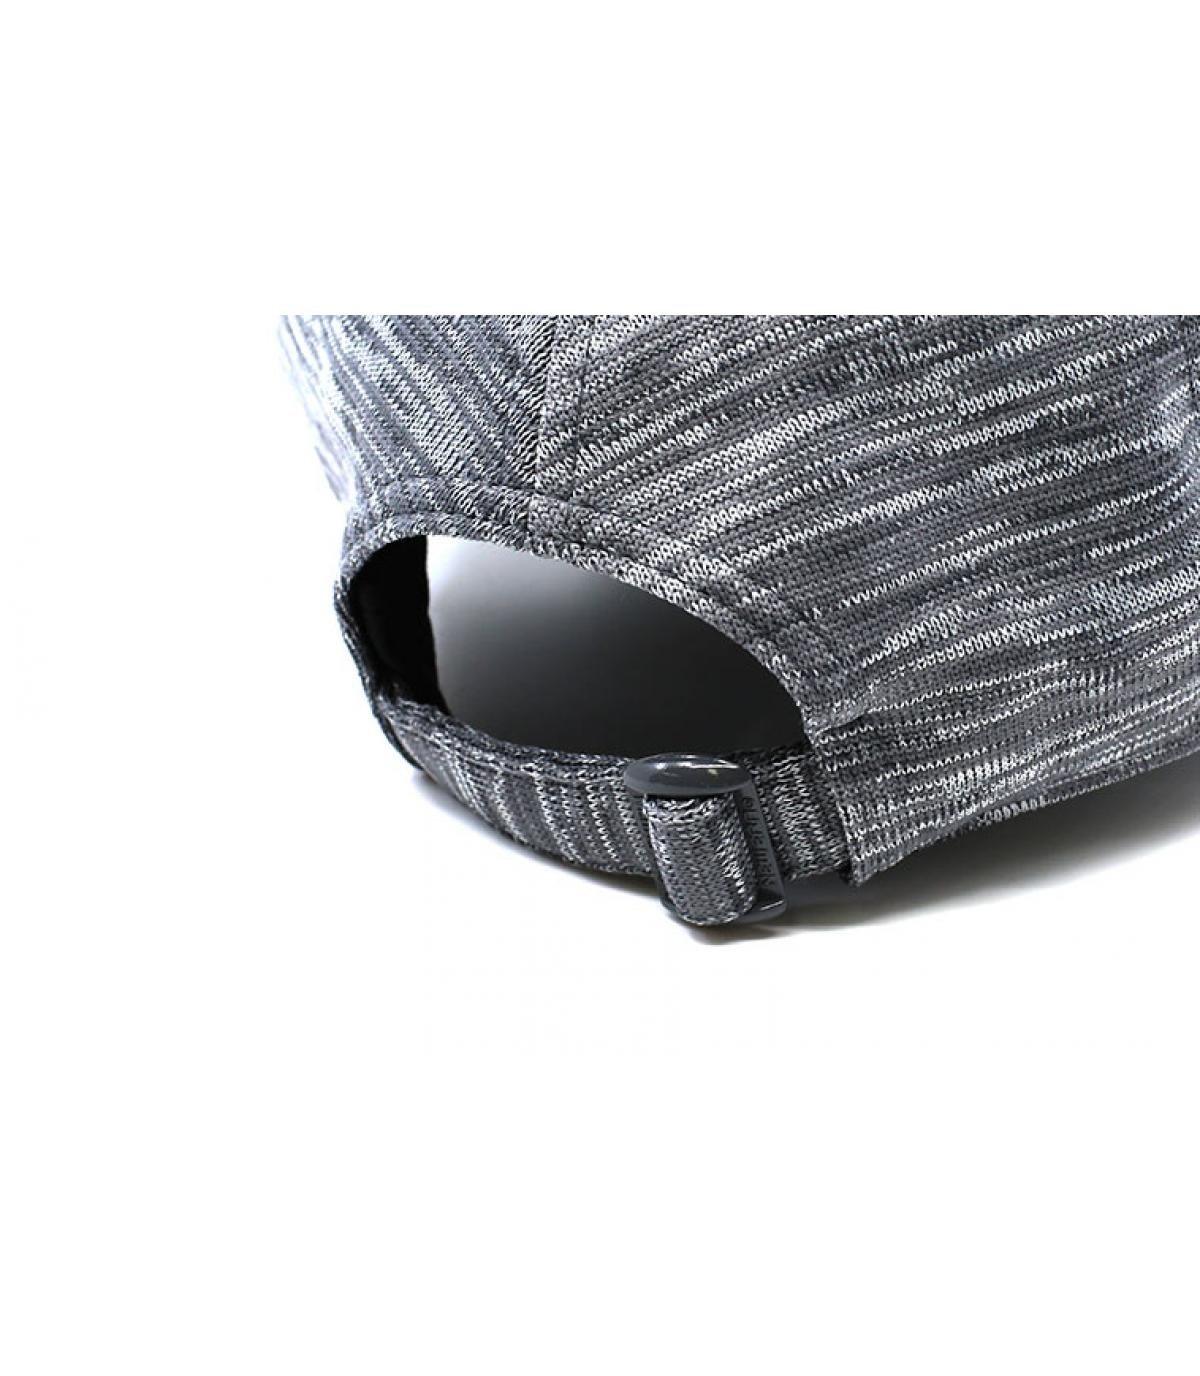 Détails Engineered Fit NY 9Forty graphite - image 5